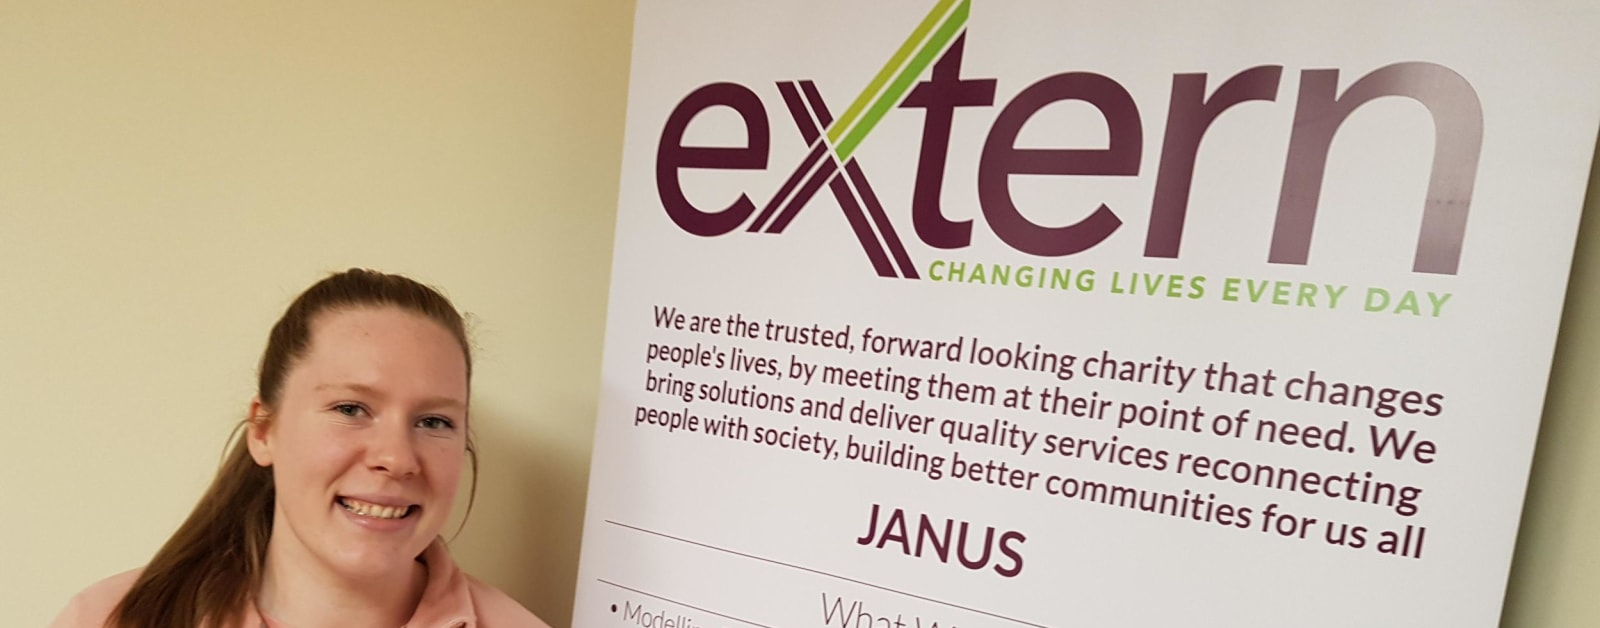 What would you say to anyone thinking about working with Extern?